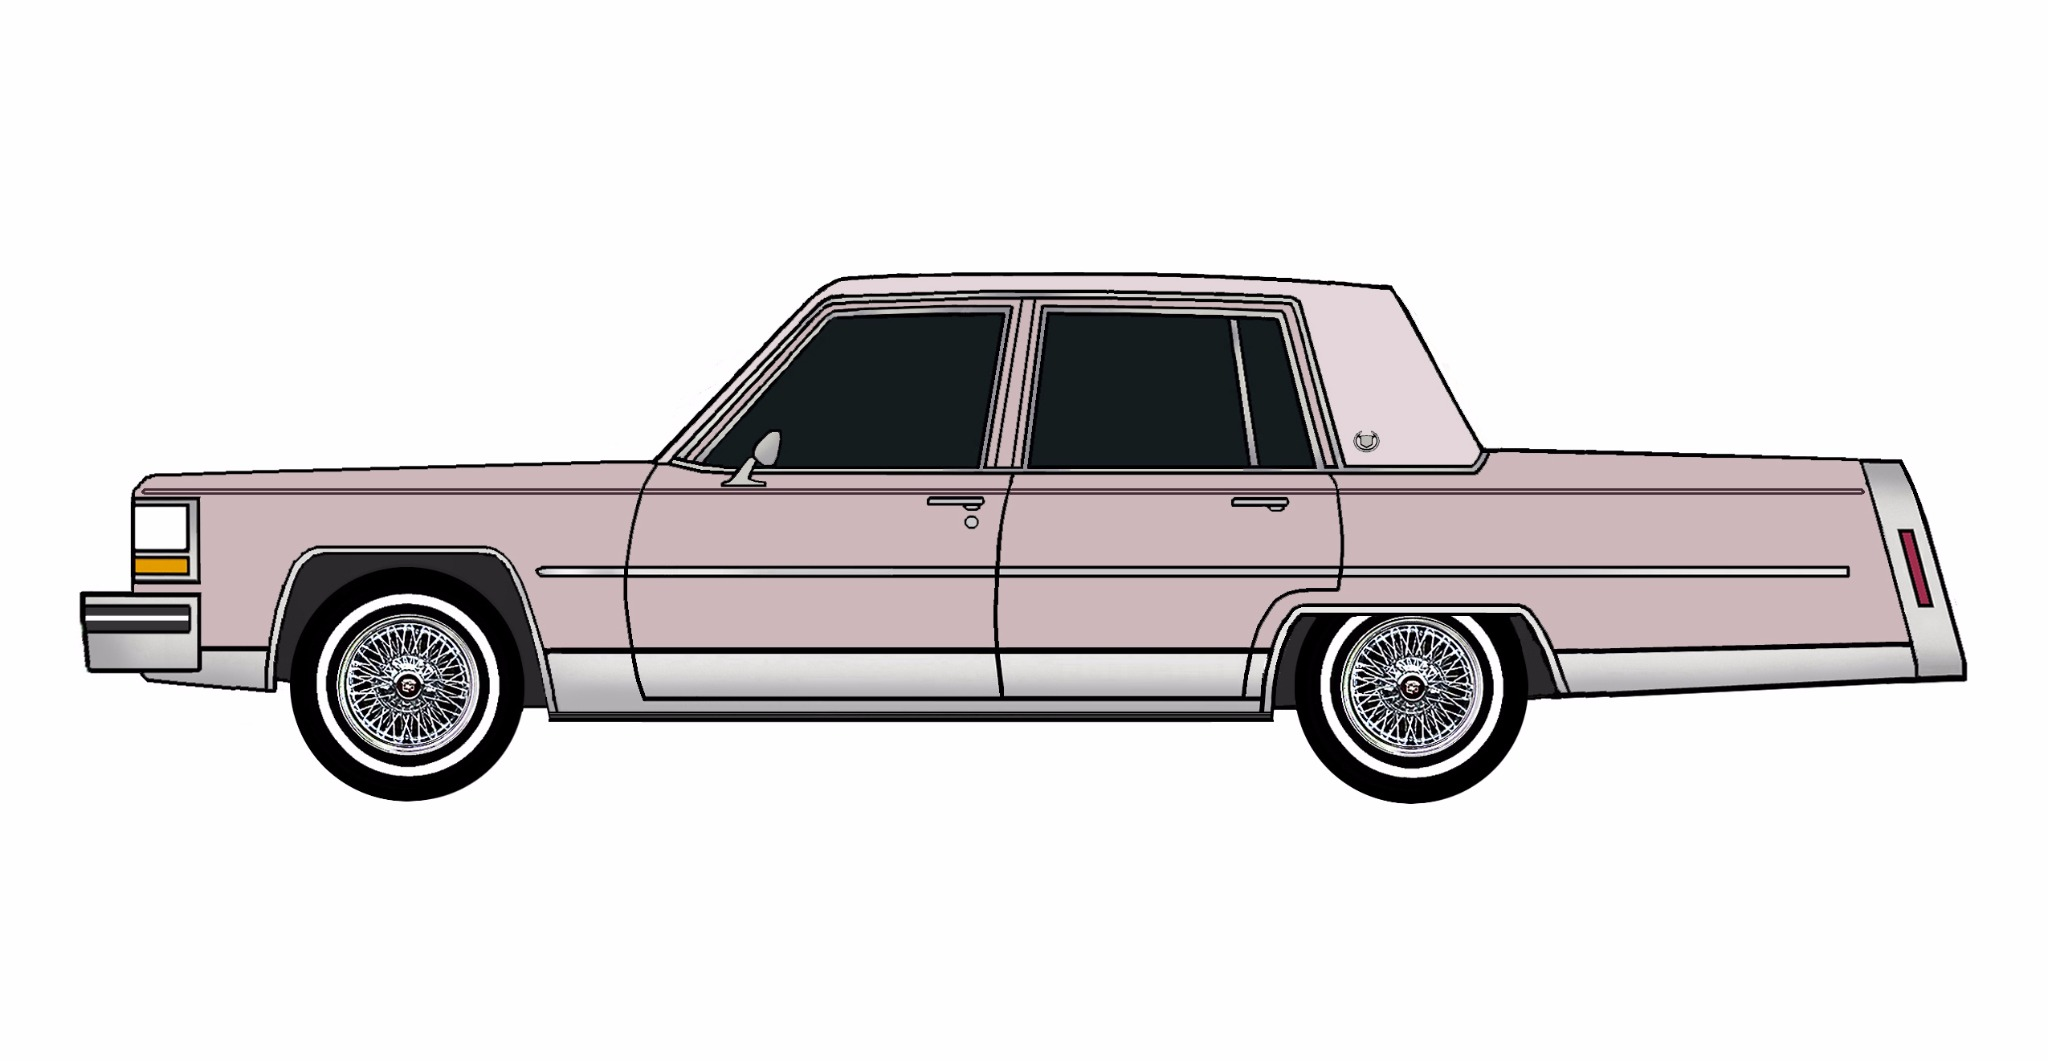 1984 Cadillac Fleetwood Brougham LAVENDER MIST